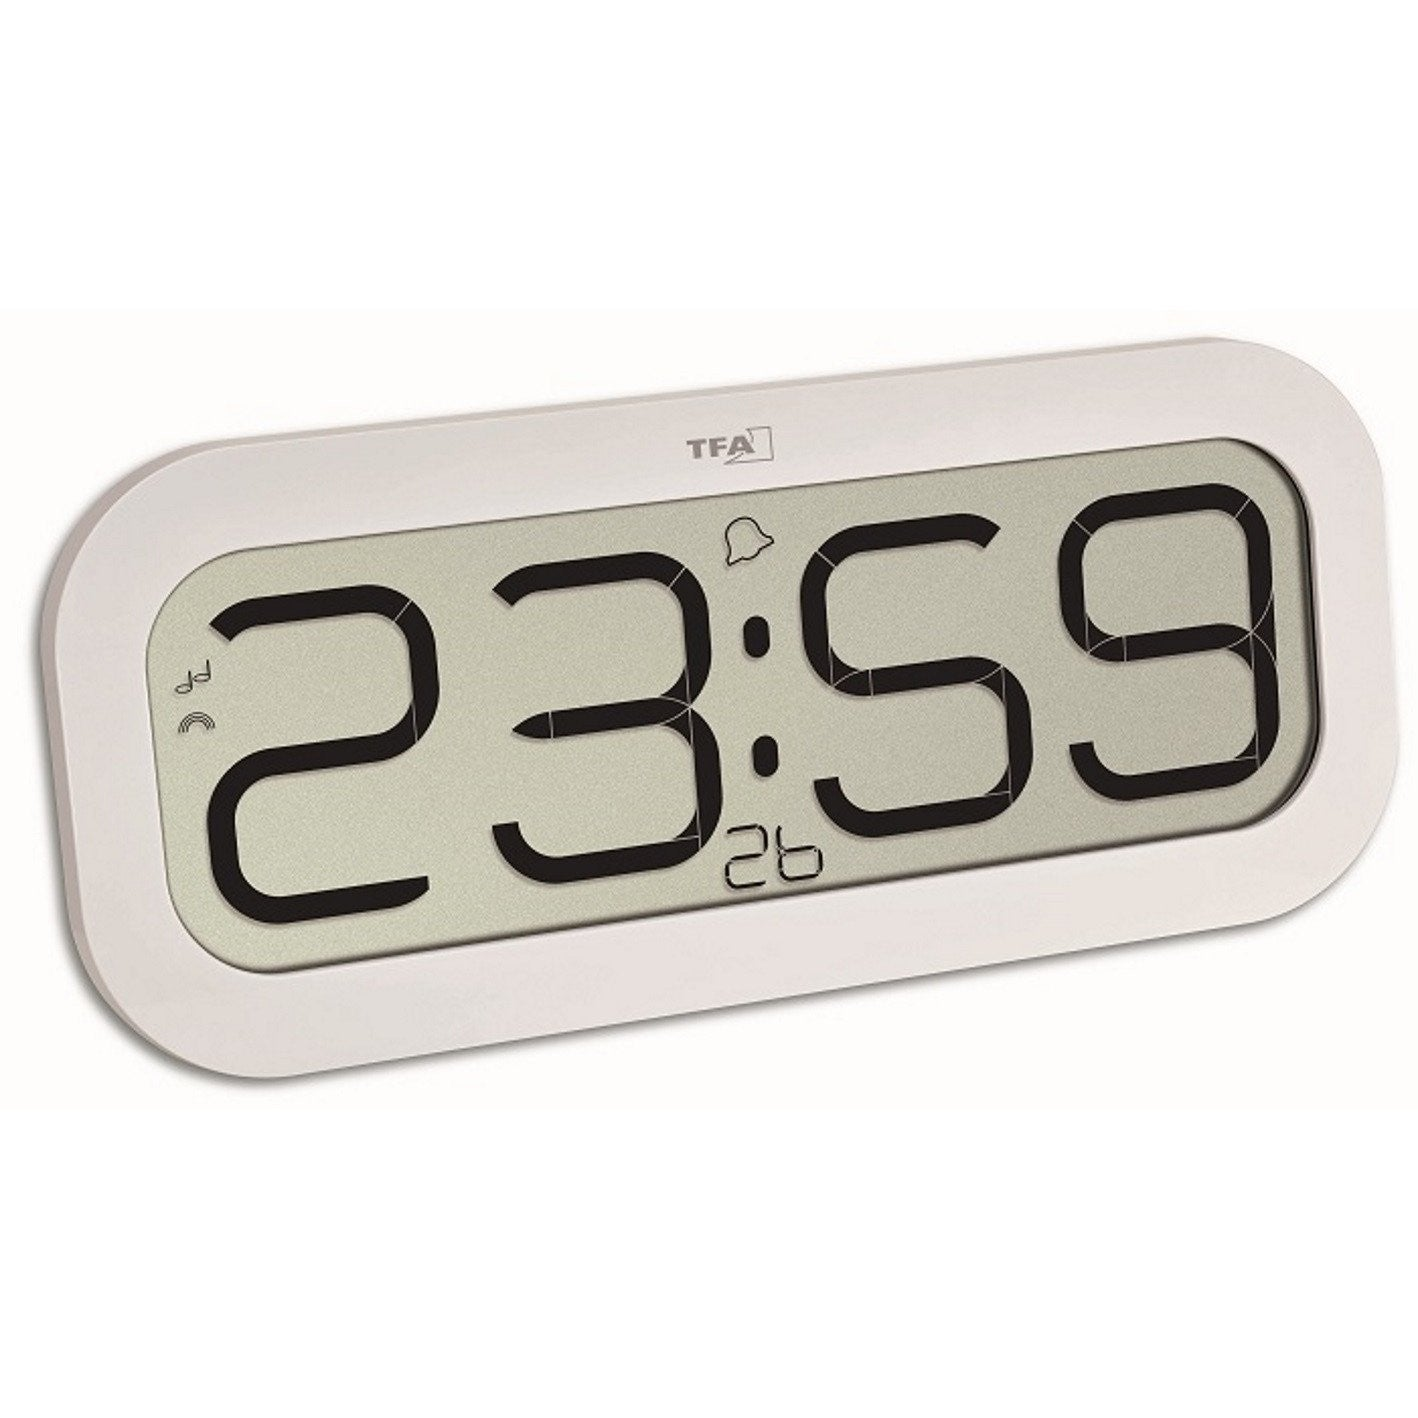 TFA BimBam Hourly Chime Digital Alarm Wall or Table Clock White 32cm 60.4514.02